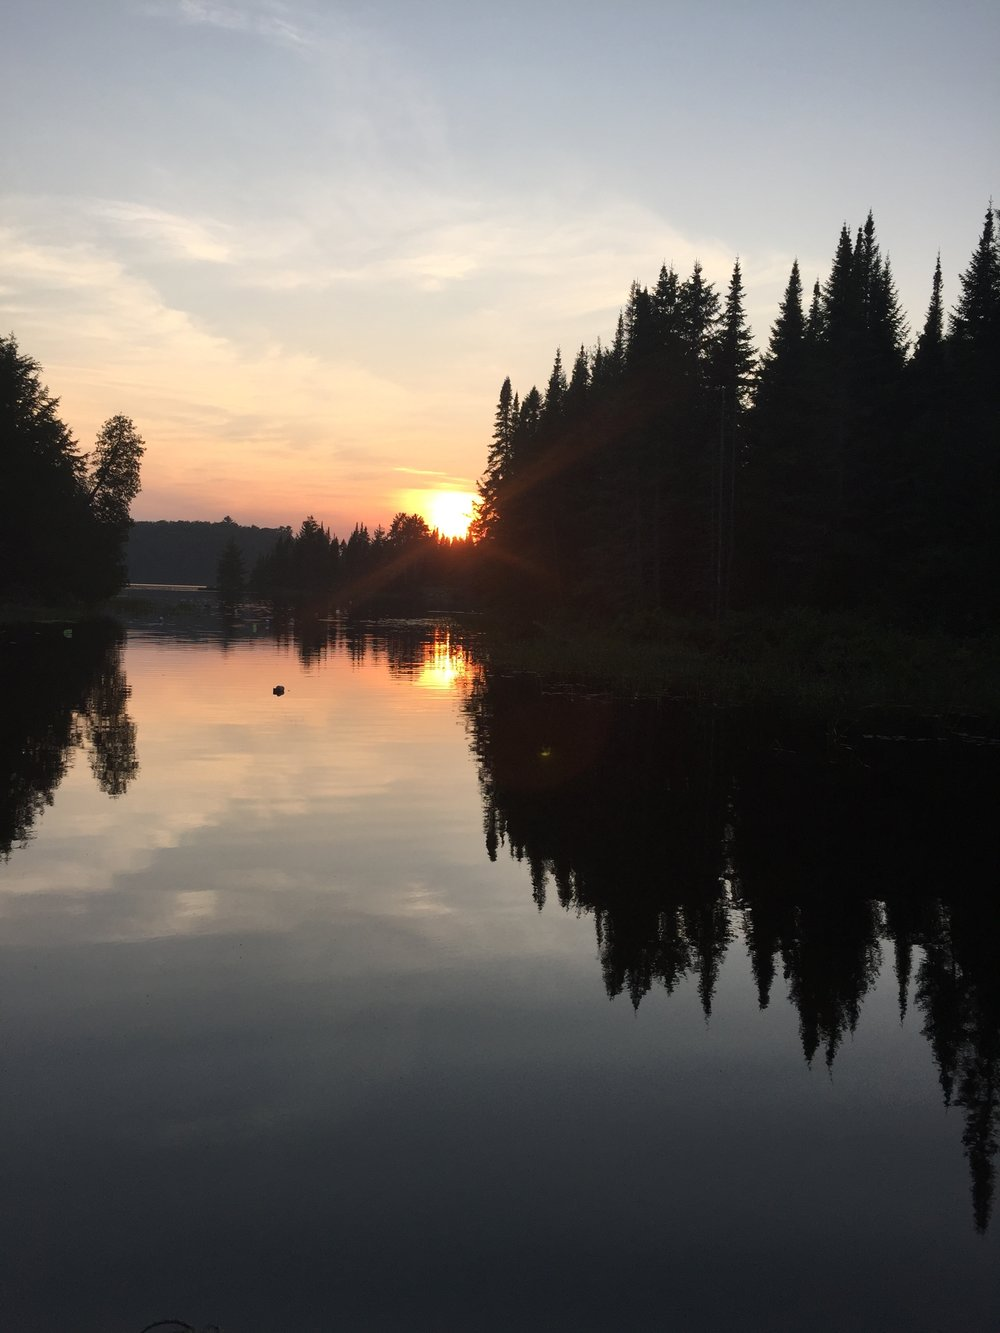 Sunset in Algonquin.